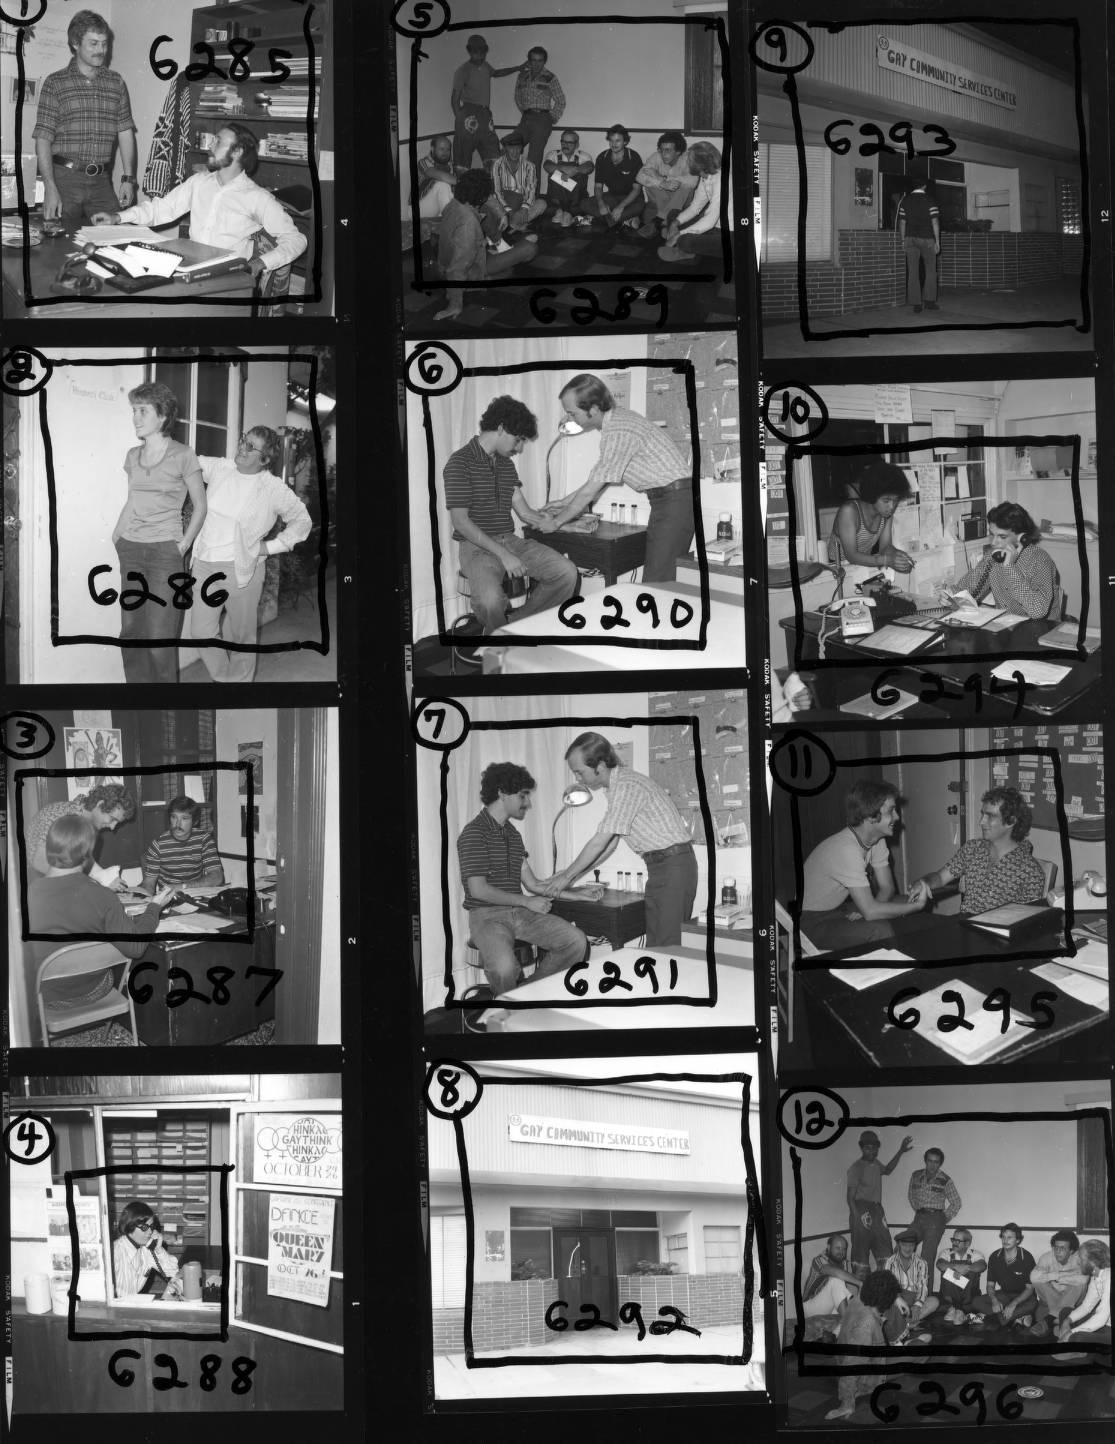 Contact sheet showing various social services rendered by the GCSC